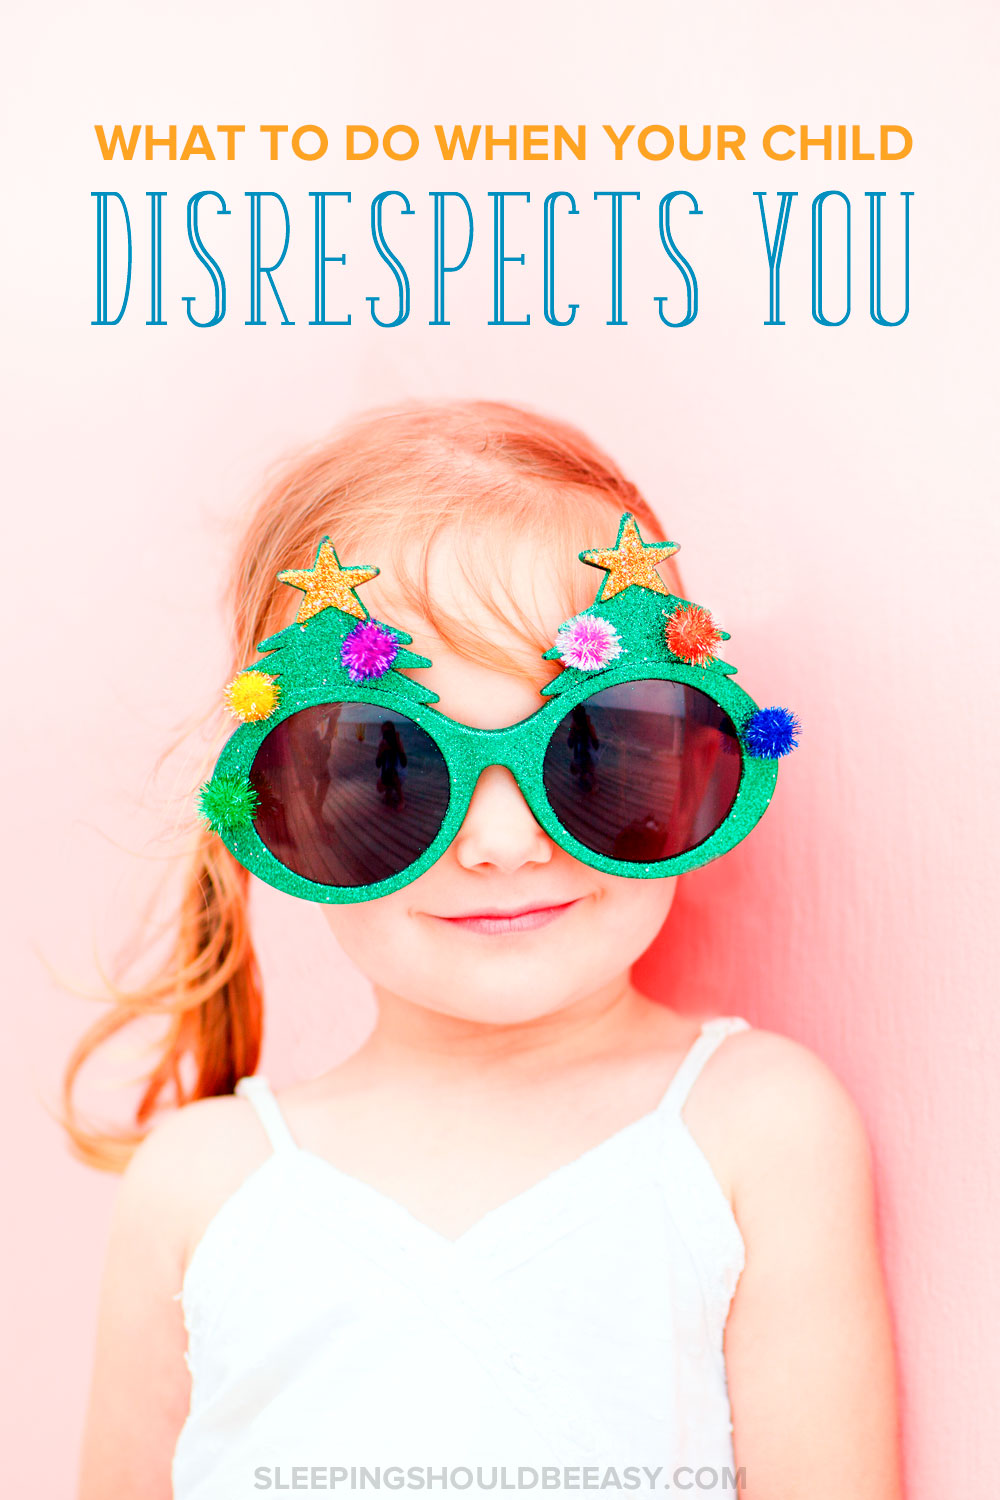 Tired of the disrespectful way your child talks back to you? Learn what to do about disrespectful children and how to rebuild your relationship.